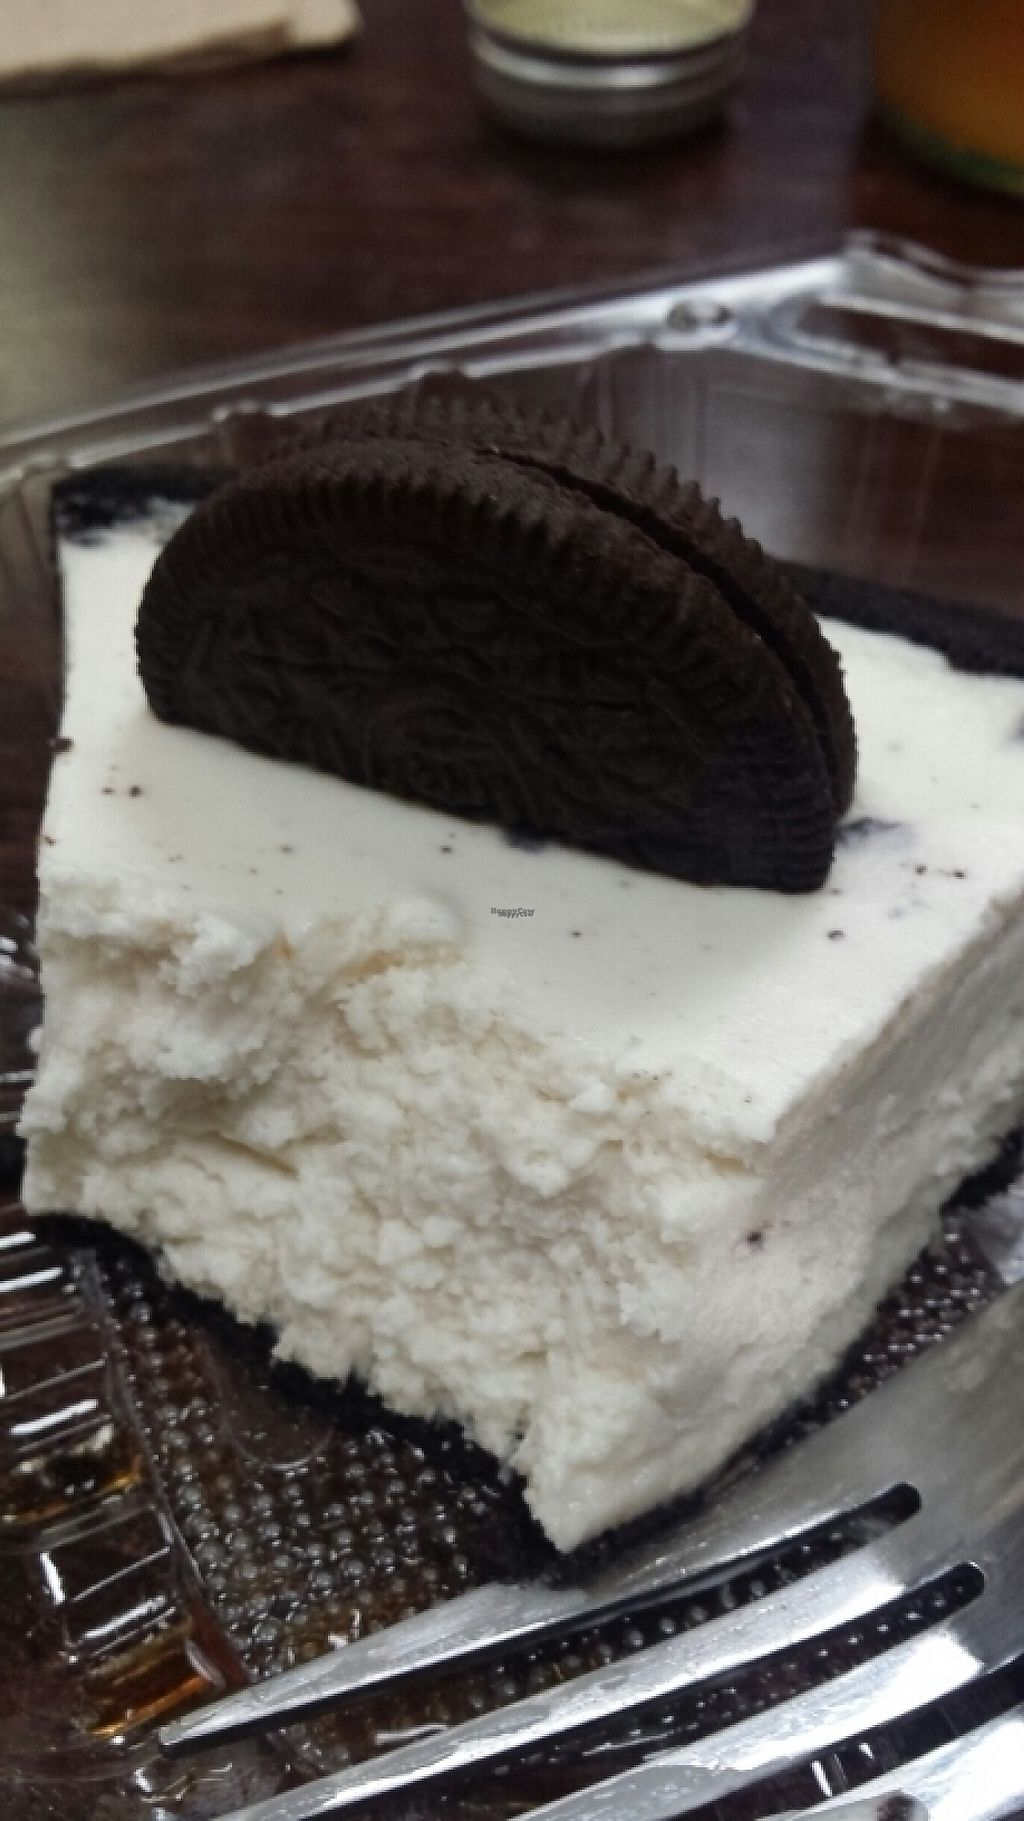 """Photo of Vegan Pizza  by <a href=""""/members/profile/horseleach"""">horseleach</a> <br/>Oreo cheesecake <br/> January 25, 2017  - <a href='/contact/abuse/image/38016/216667'>Report</a>"""